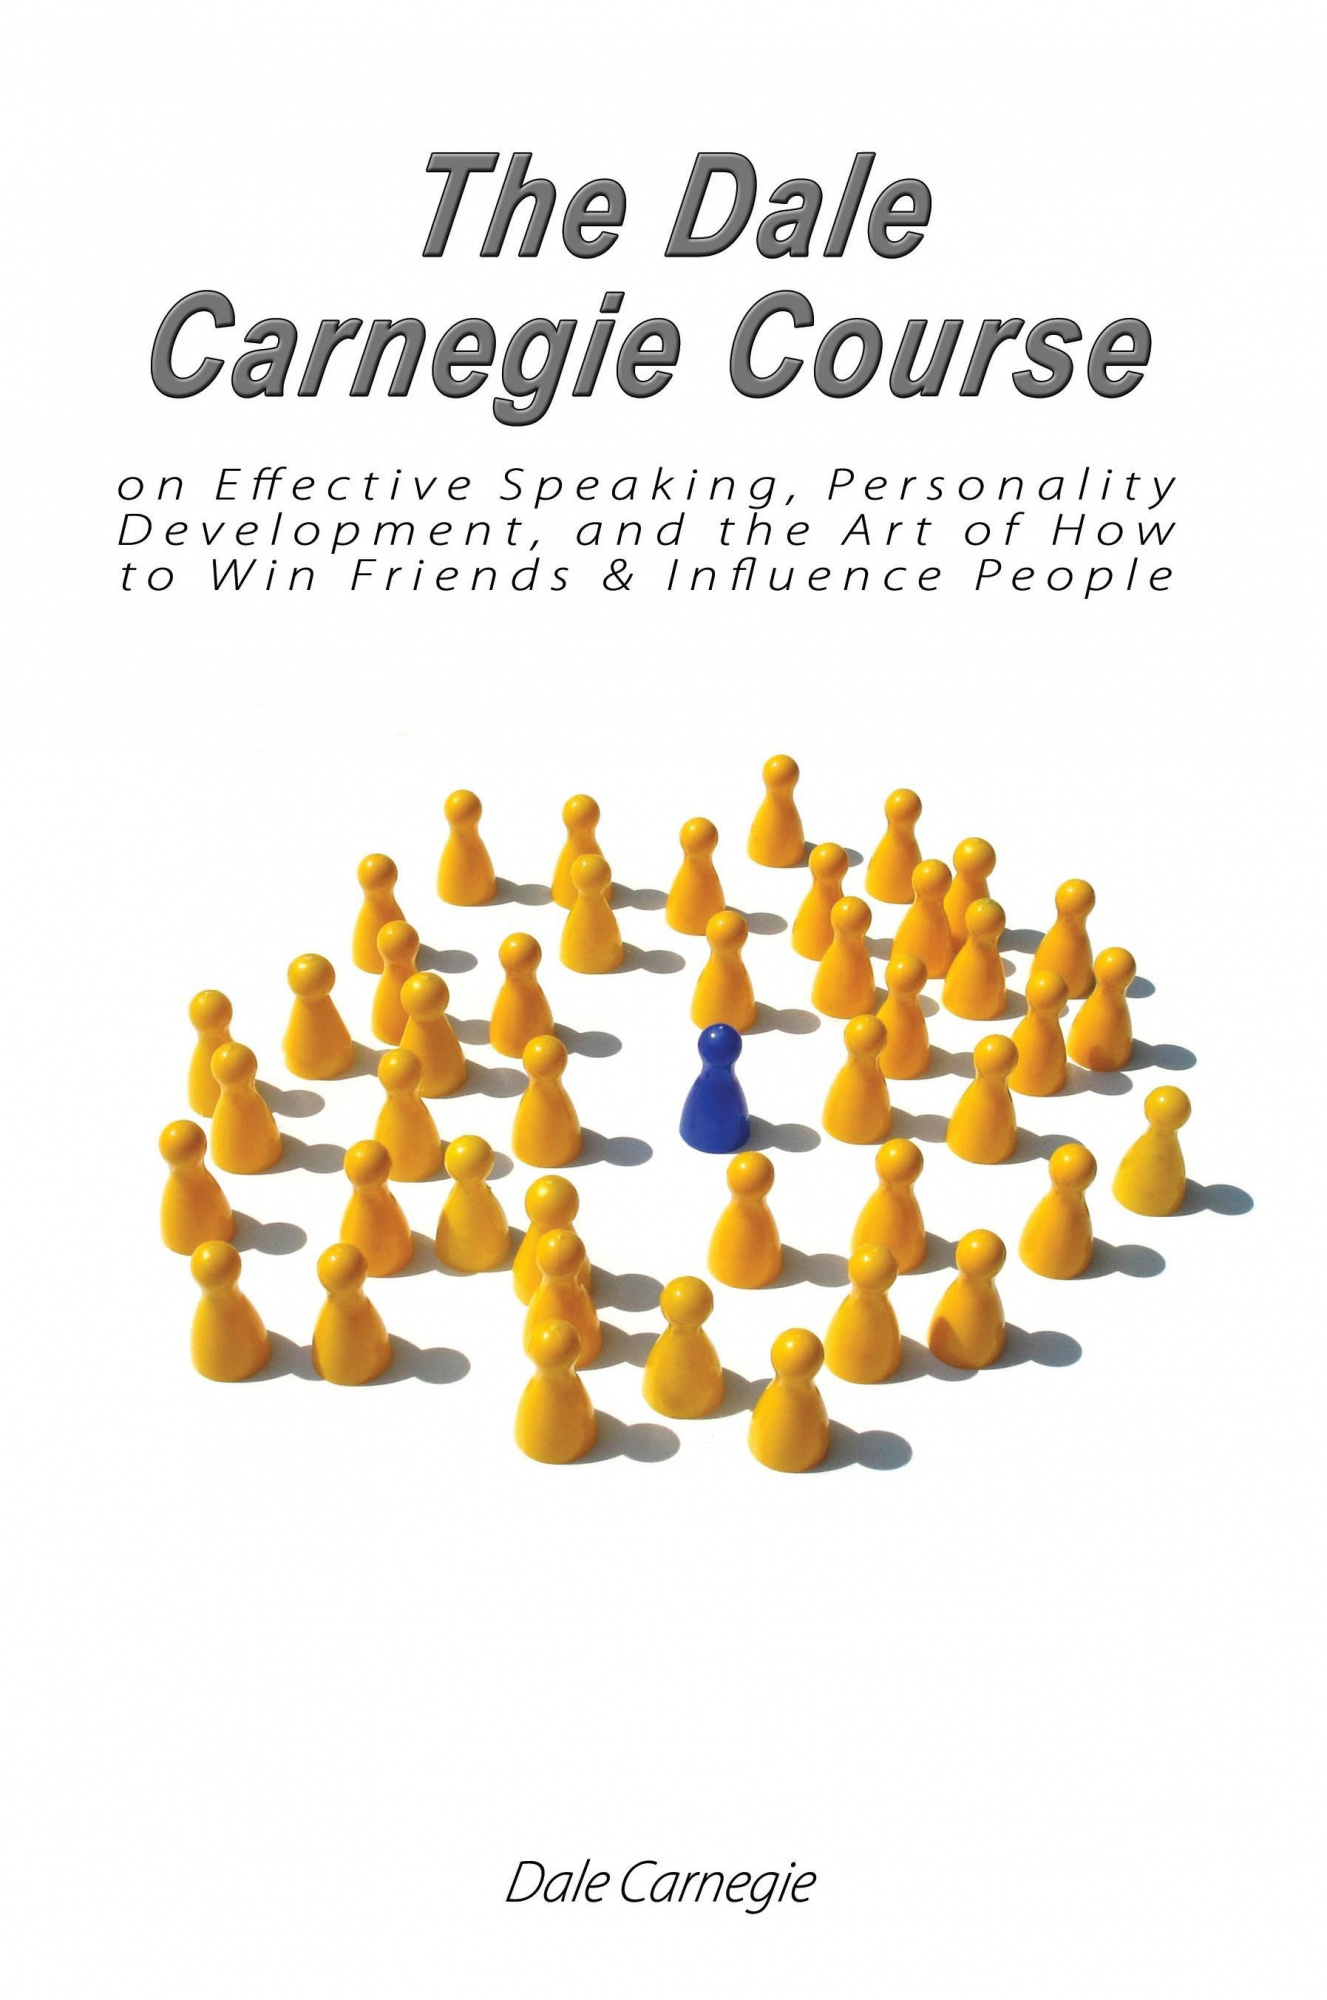 The Dale Carnegie Course on Effective Speaking, Personality Development, and the Art of How to Win Friends & Influence People